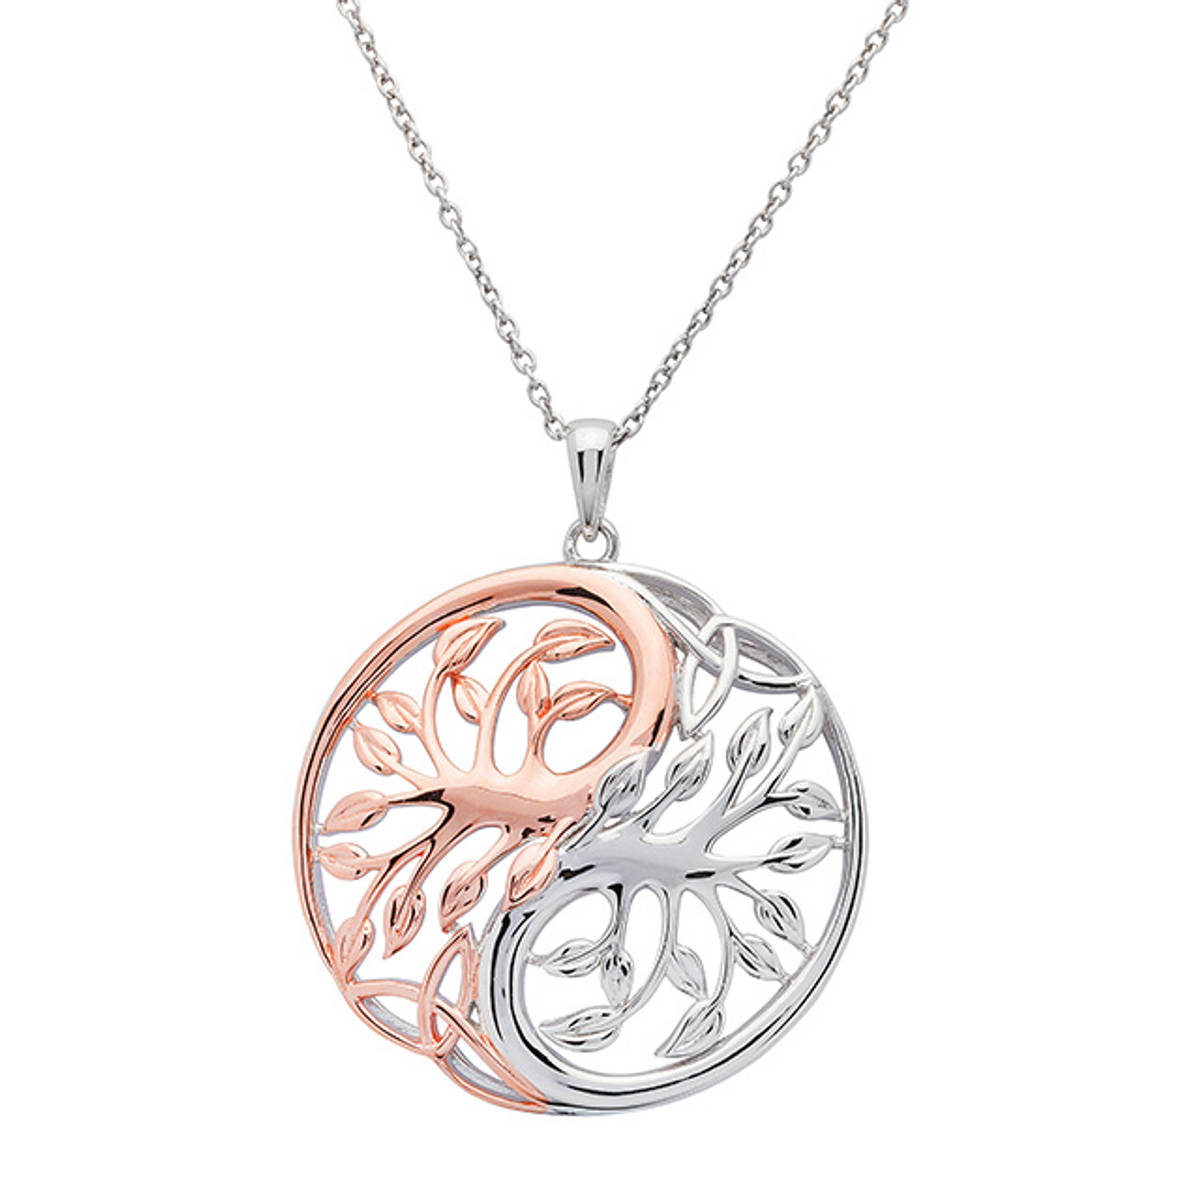 Silver and rose gold two-tone Circular Tree Of Life and Yin Yang Pendant.  Size: 30mm